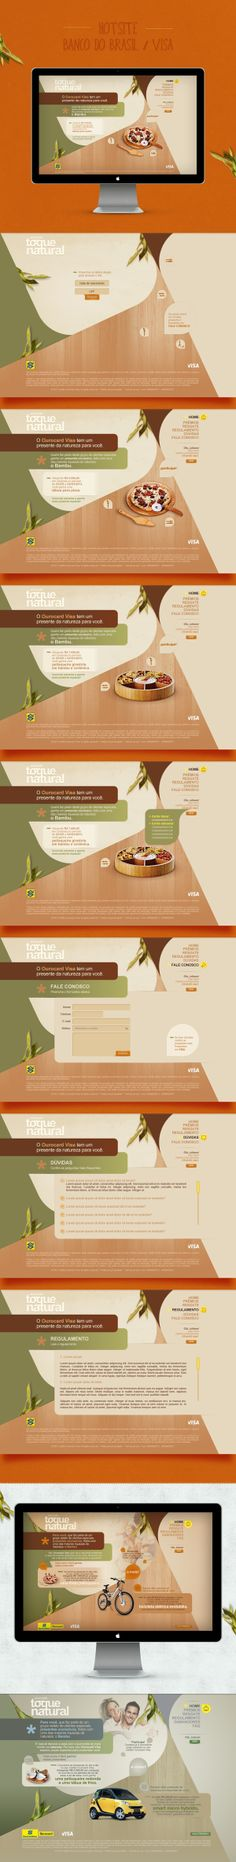 - promotion banco do brasil / visa - by Juliana Laterza, via Behance